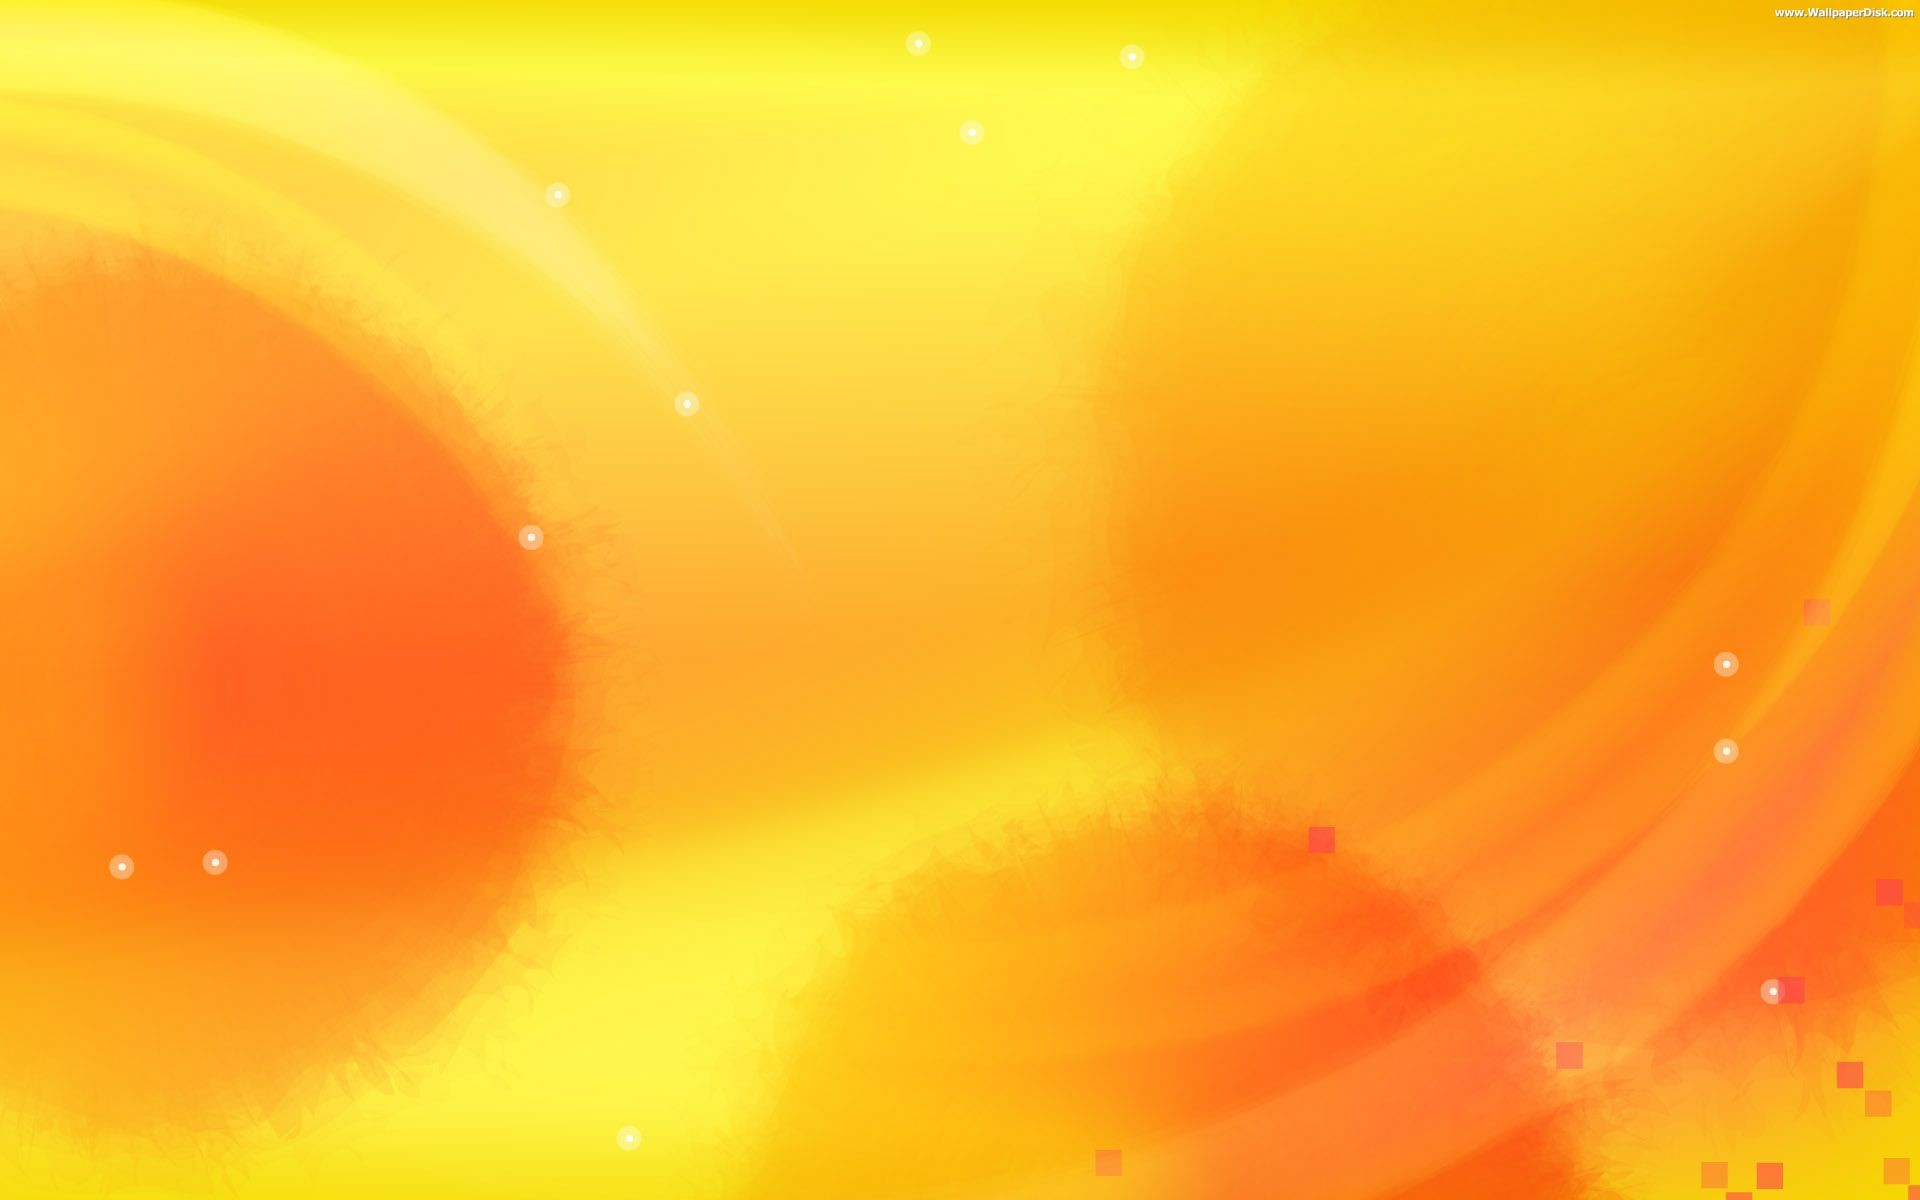 … Background; Yellow Texture Background